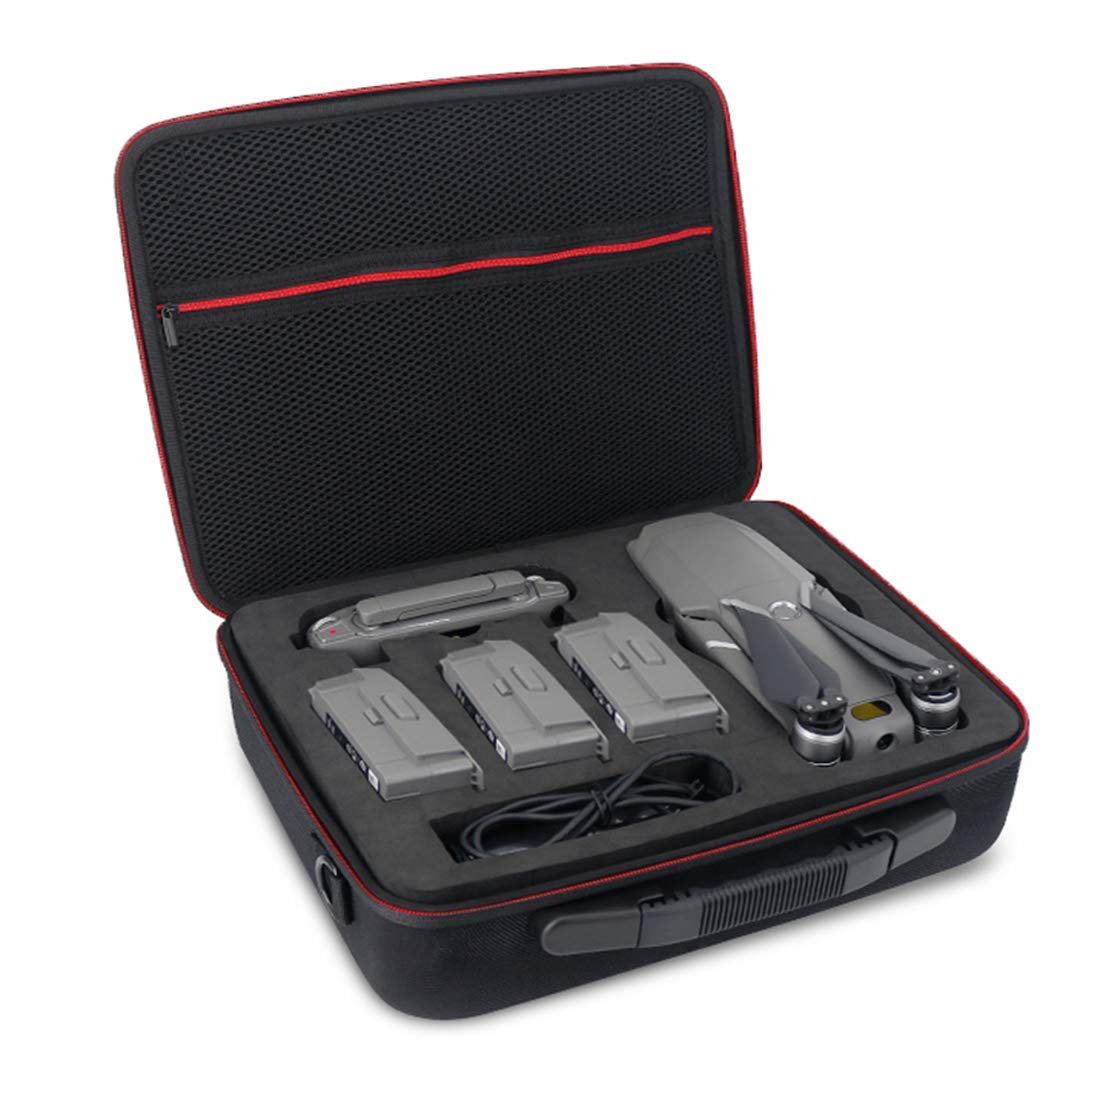 Yamix Shoulder Bag Travel Bag Carrying Case Carrying Bag with 4 Batteries Storage Case for DJI Mavic 2 PRO/ Mavic 2 Zoom - 1680D by Yamix (Image #1)